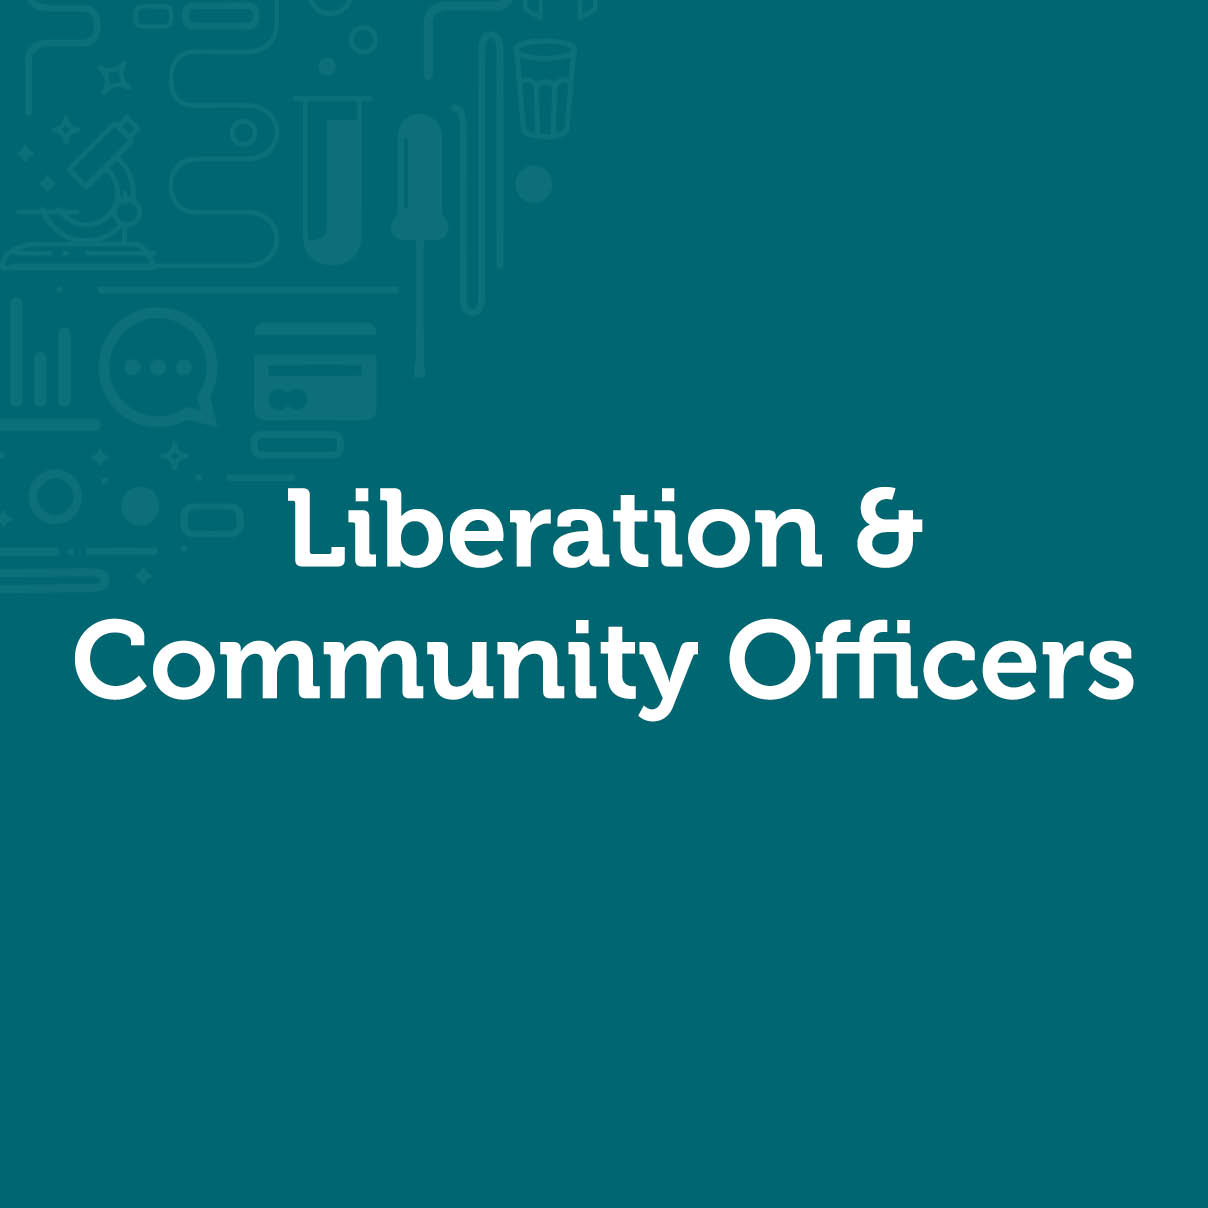 Liberation & Community Officers